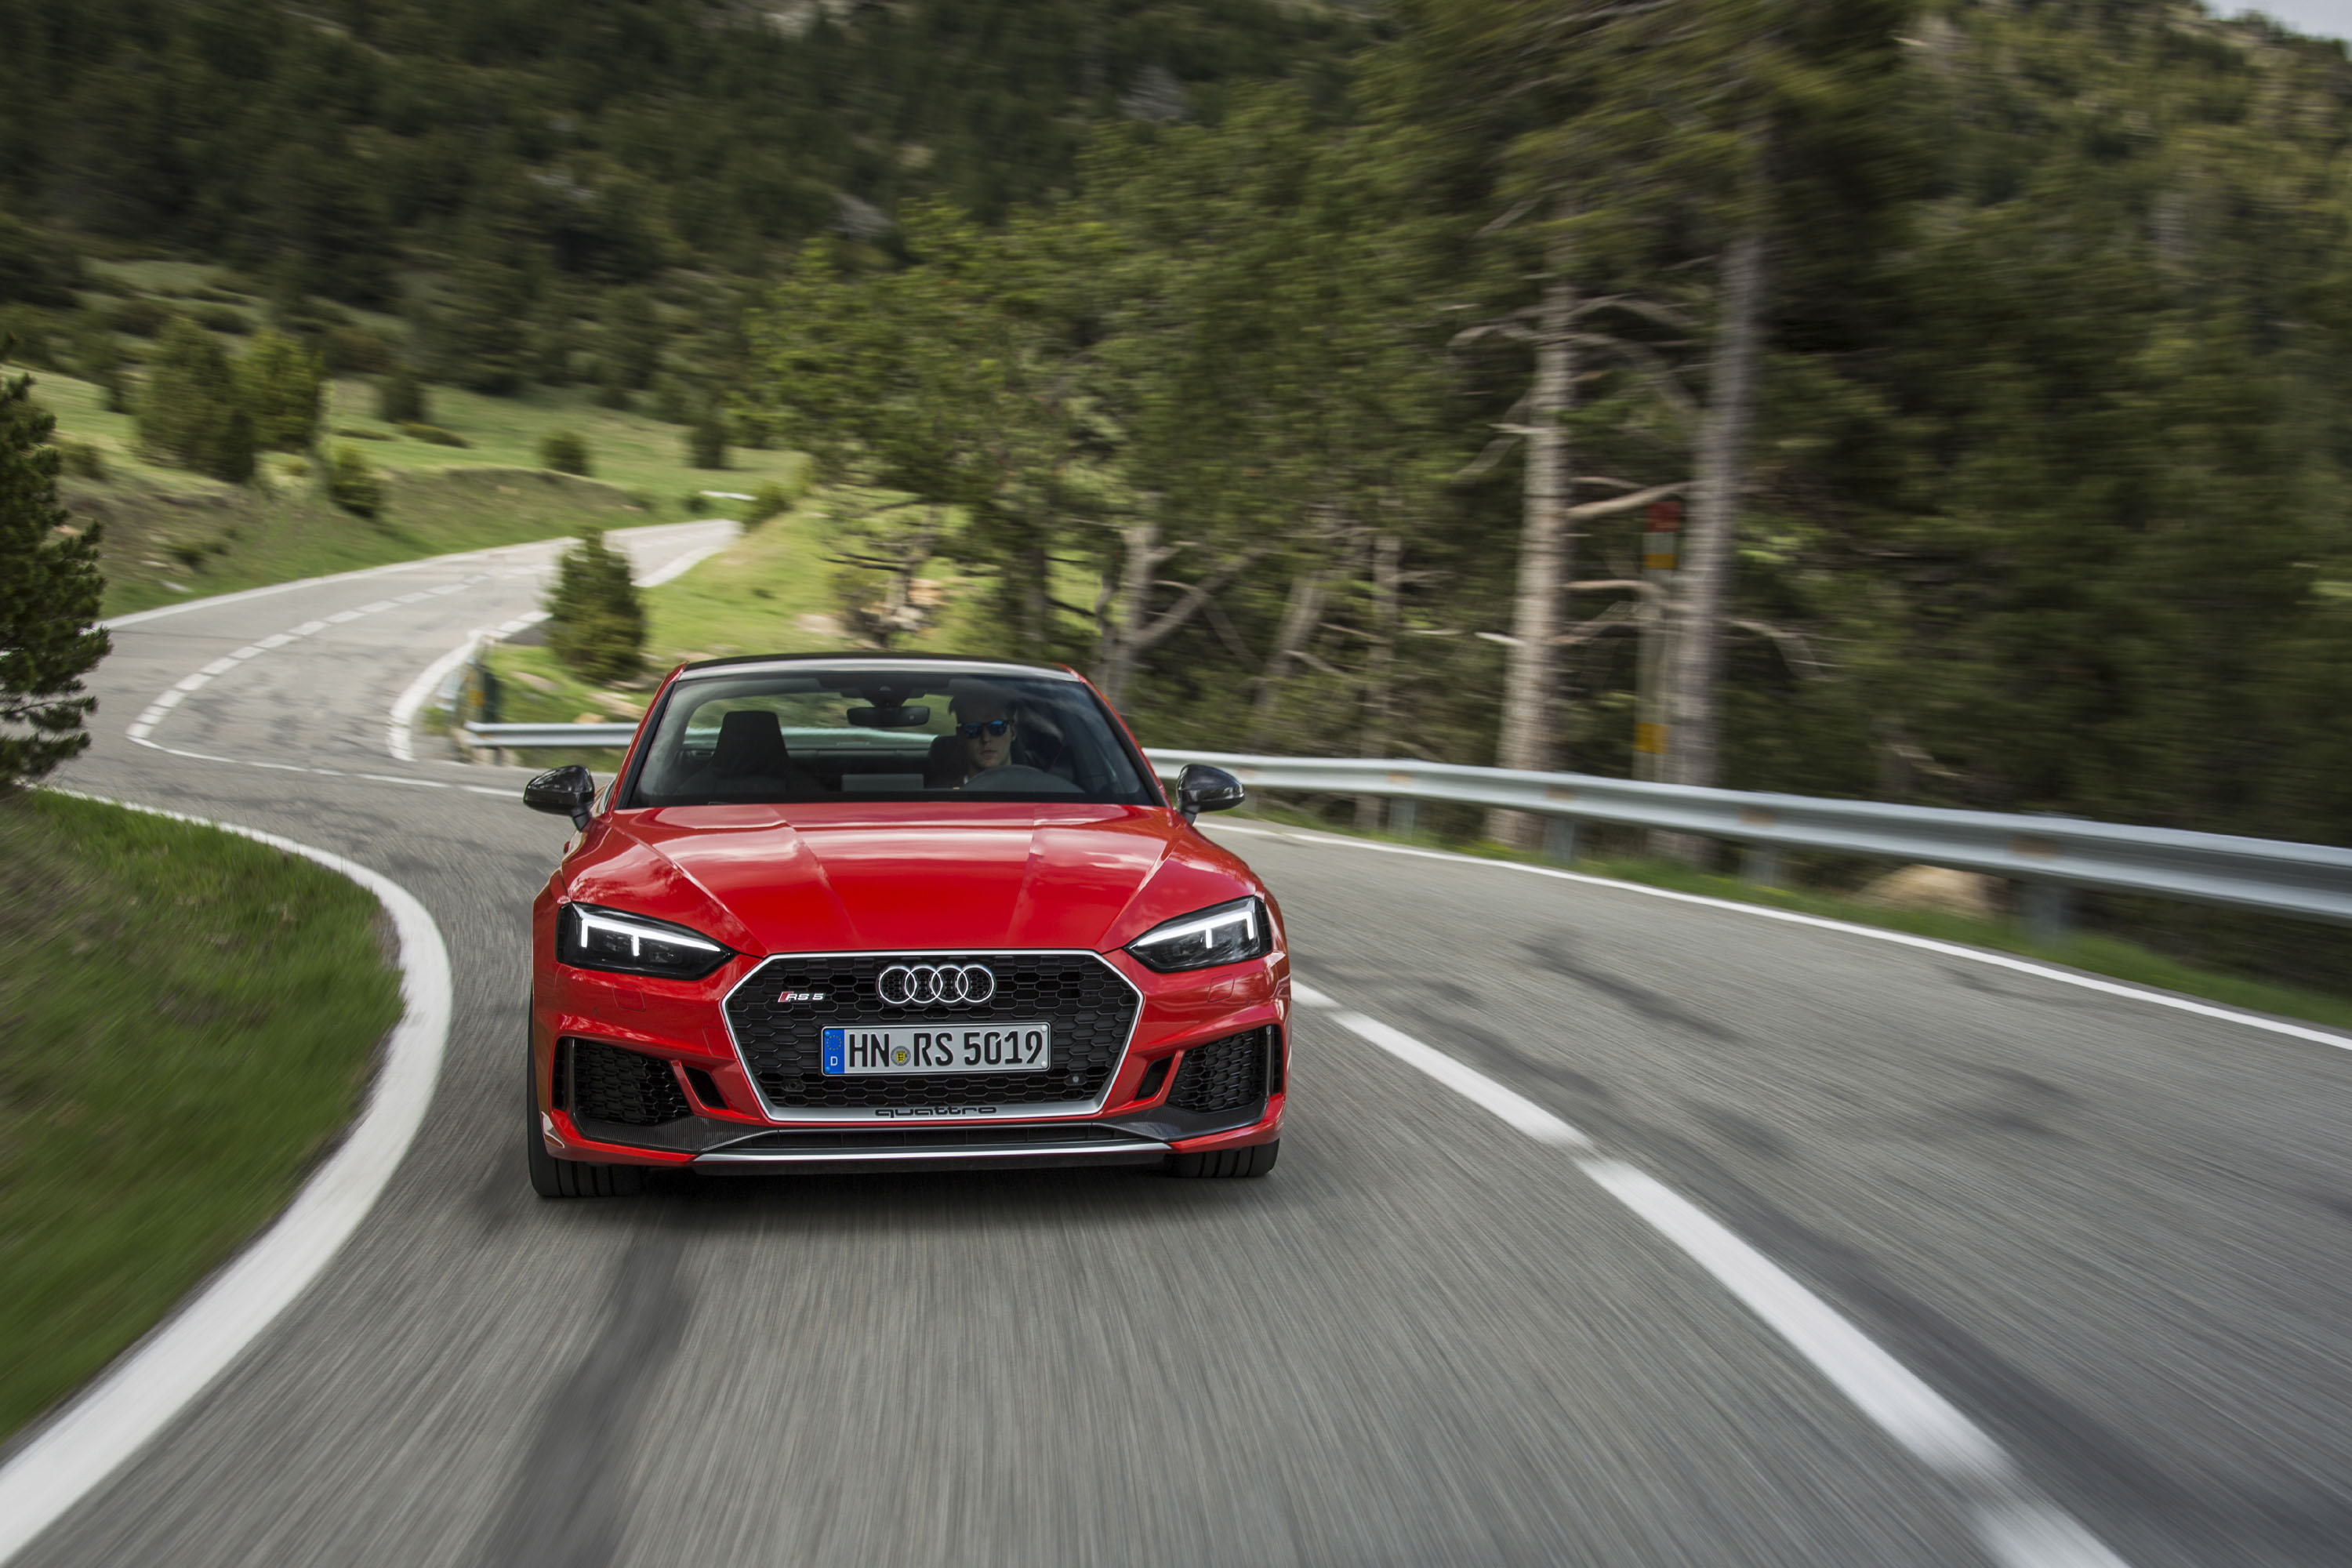 2018 audi rs4 sedan review - top speed